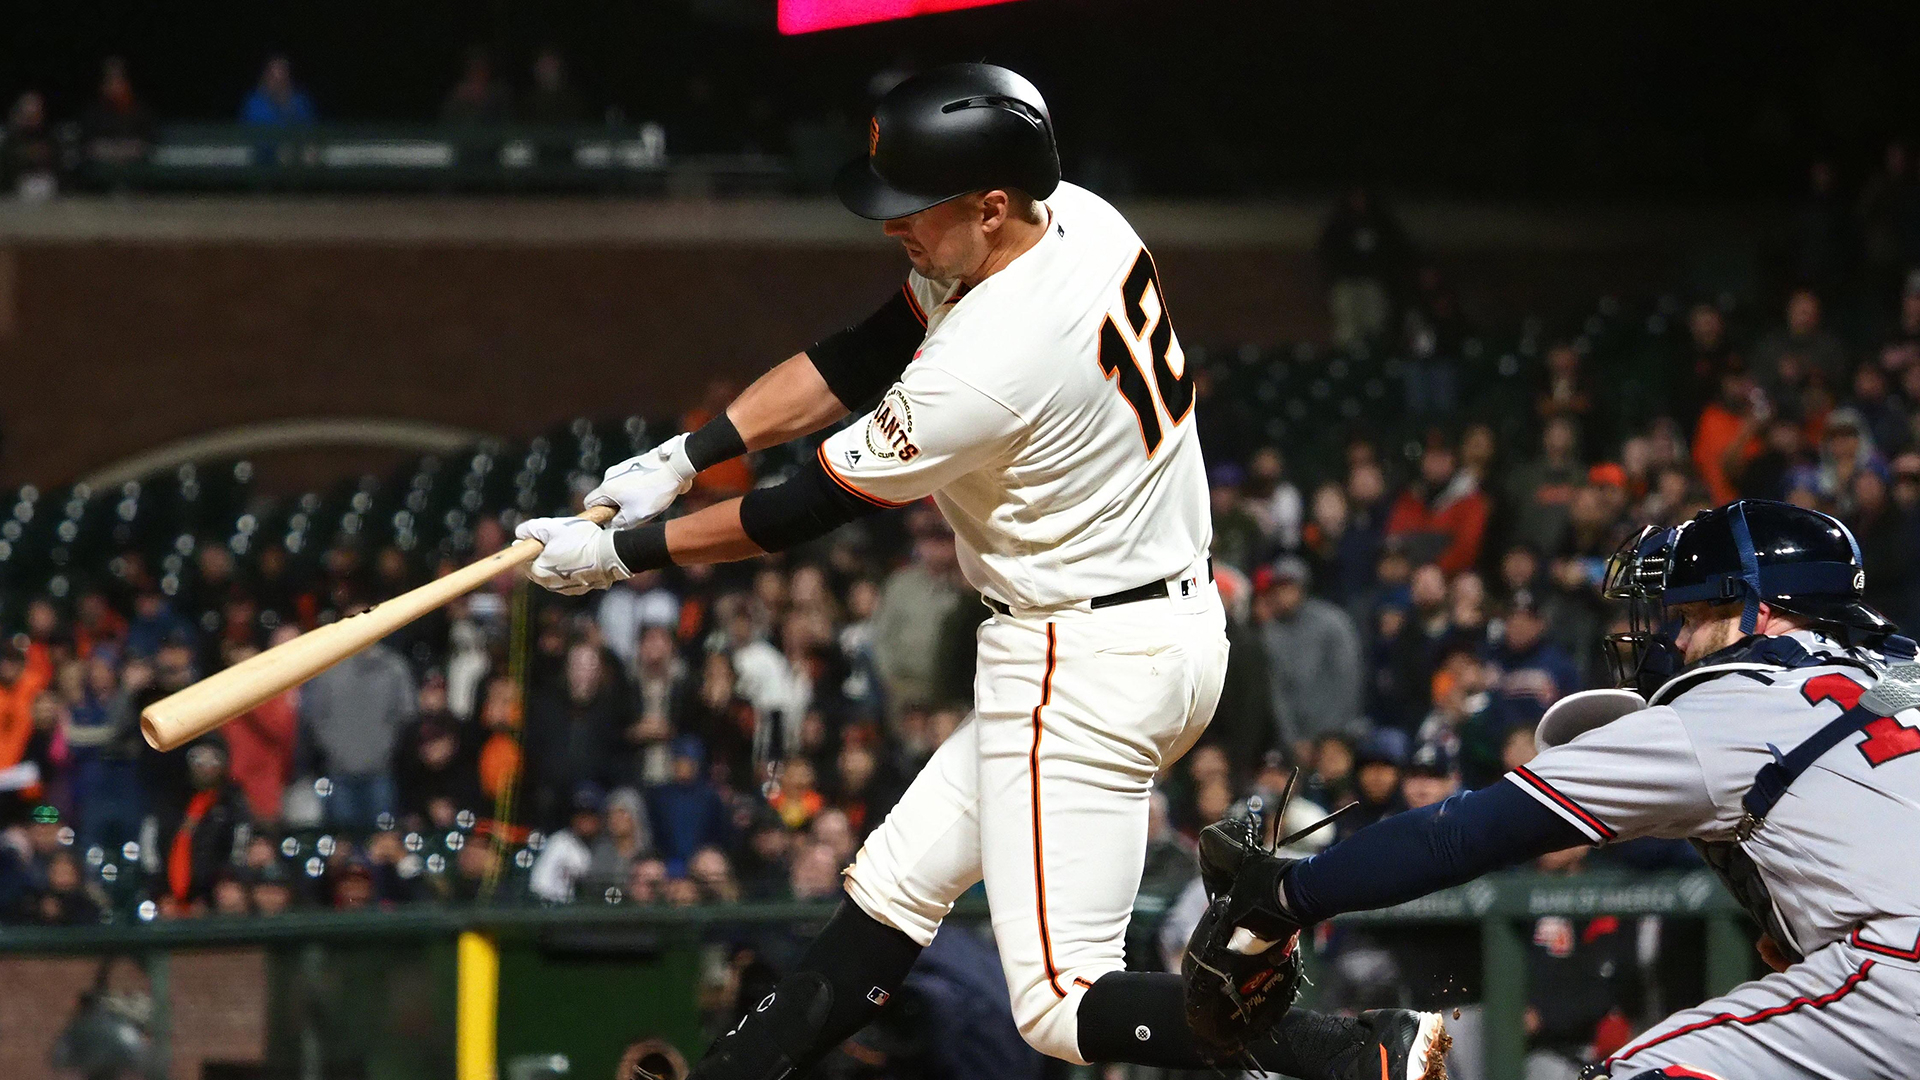 Joe Panik plays role of hero in Giants' 4-3 walk-off win against Braves